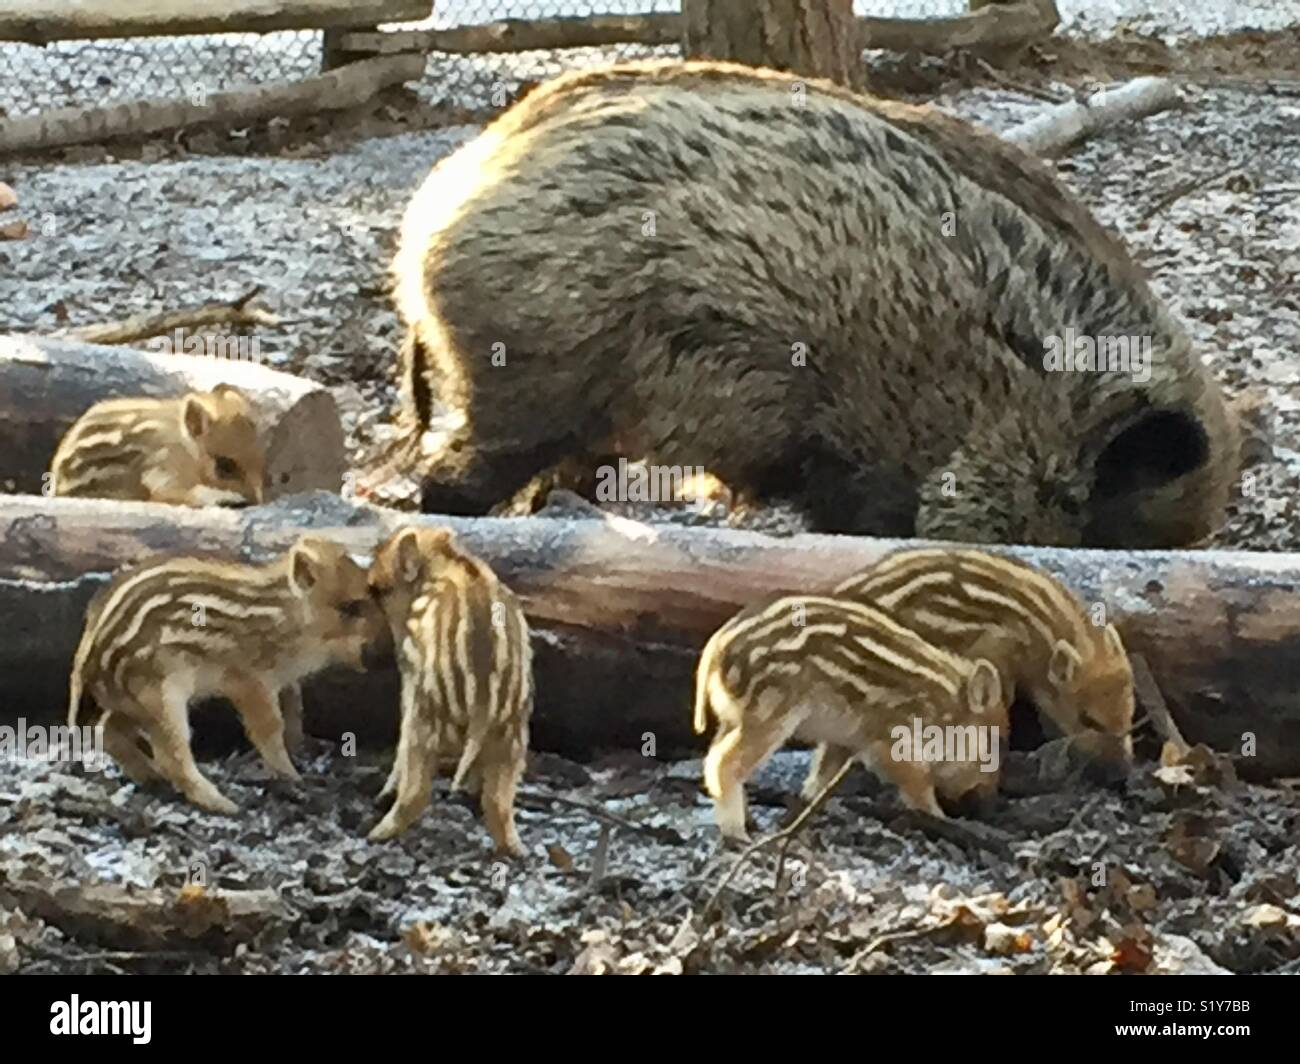 Five wild piglets with wild sow in a winter forest.  Brown tones with brown grey background with log. Stock Photo